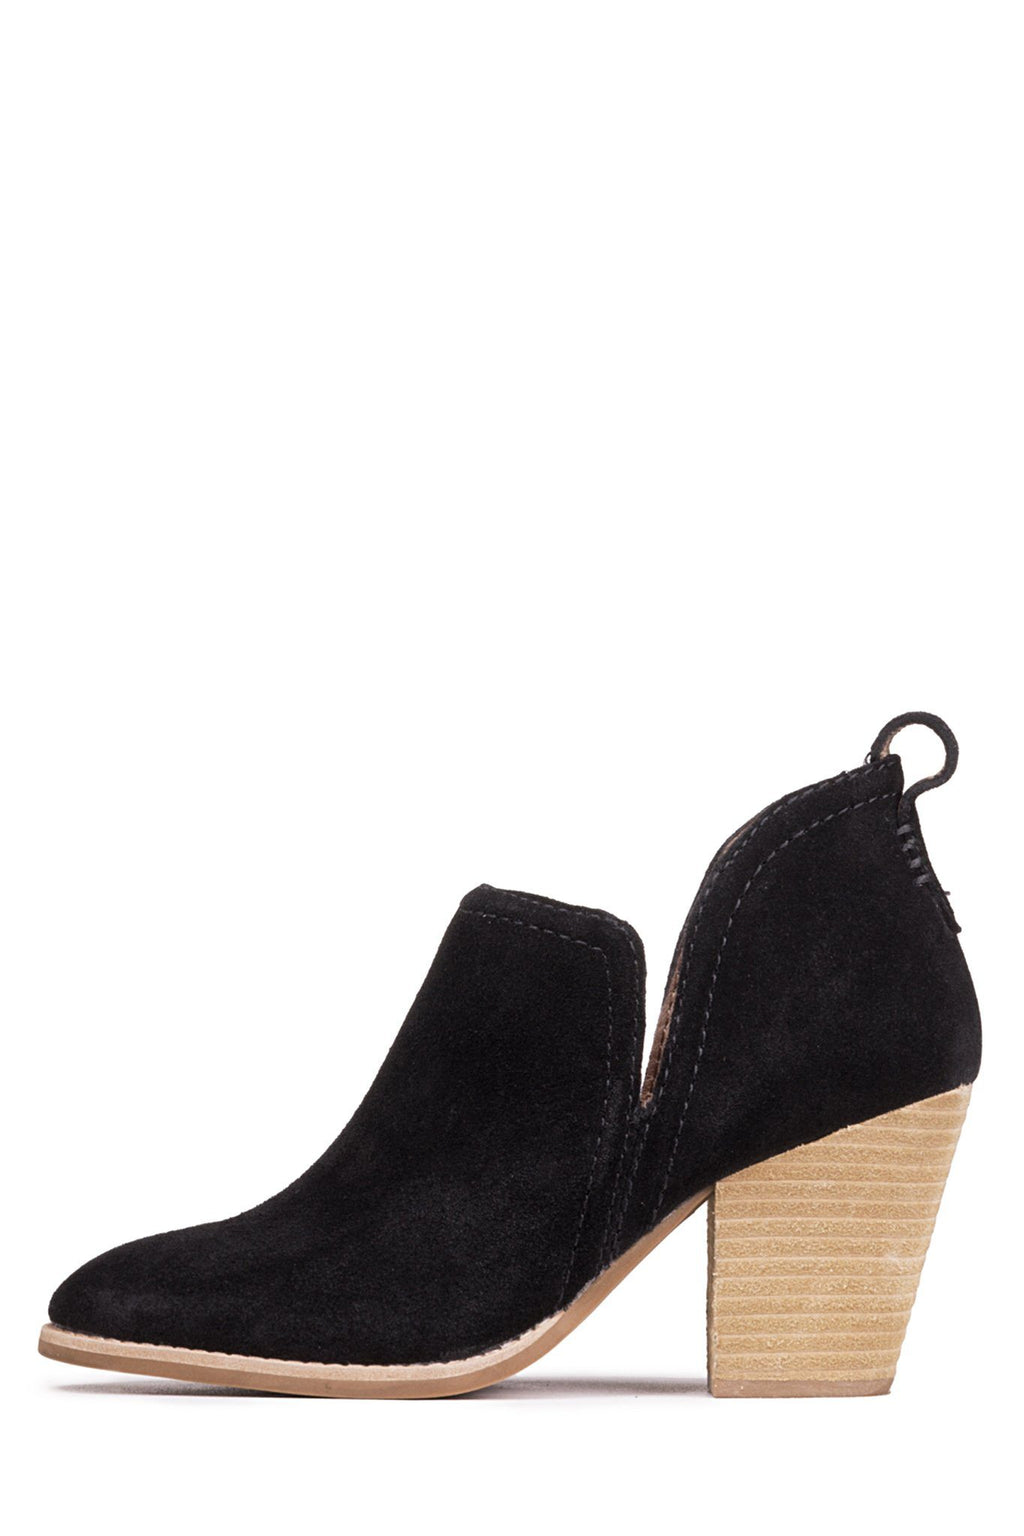 ROSALEE - Jeffrey Campbell